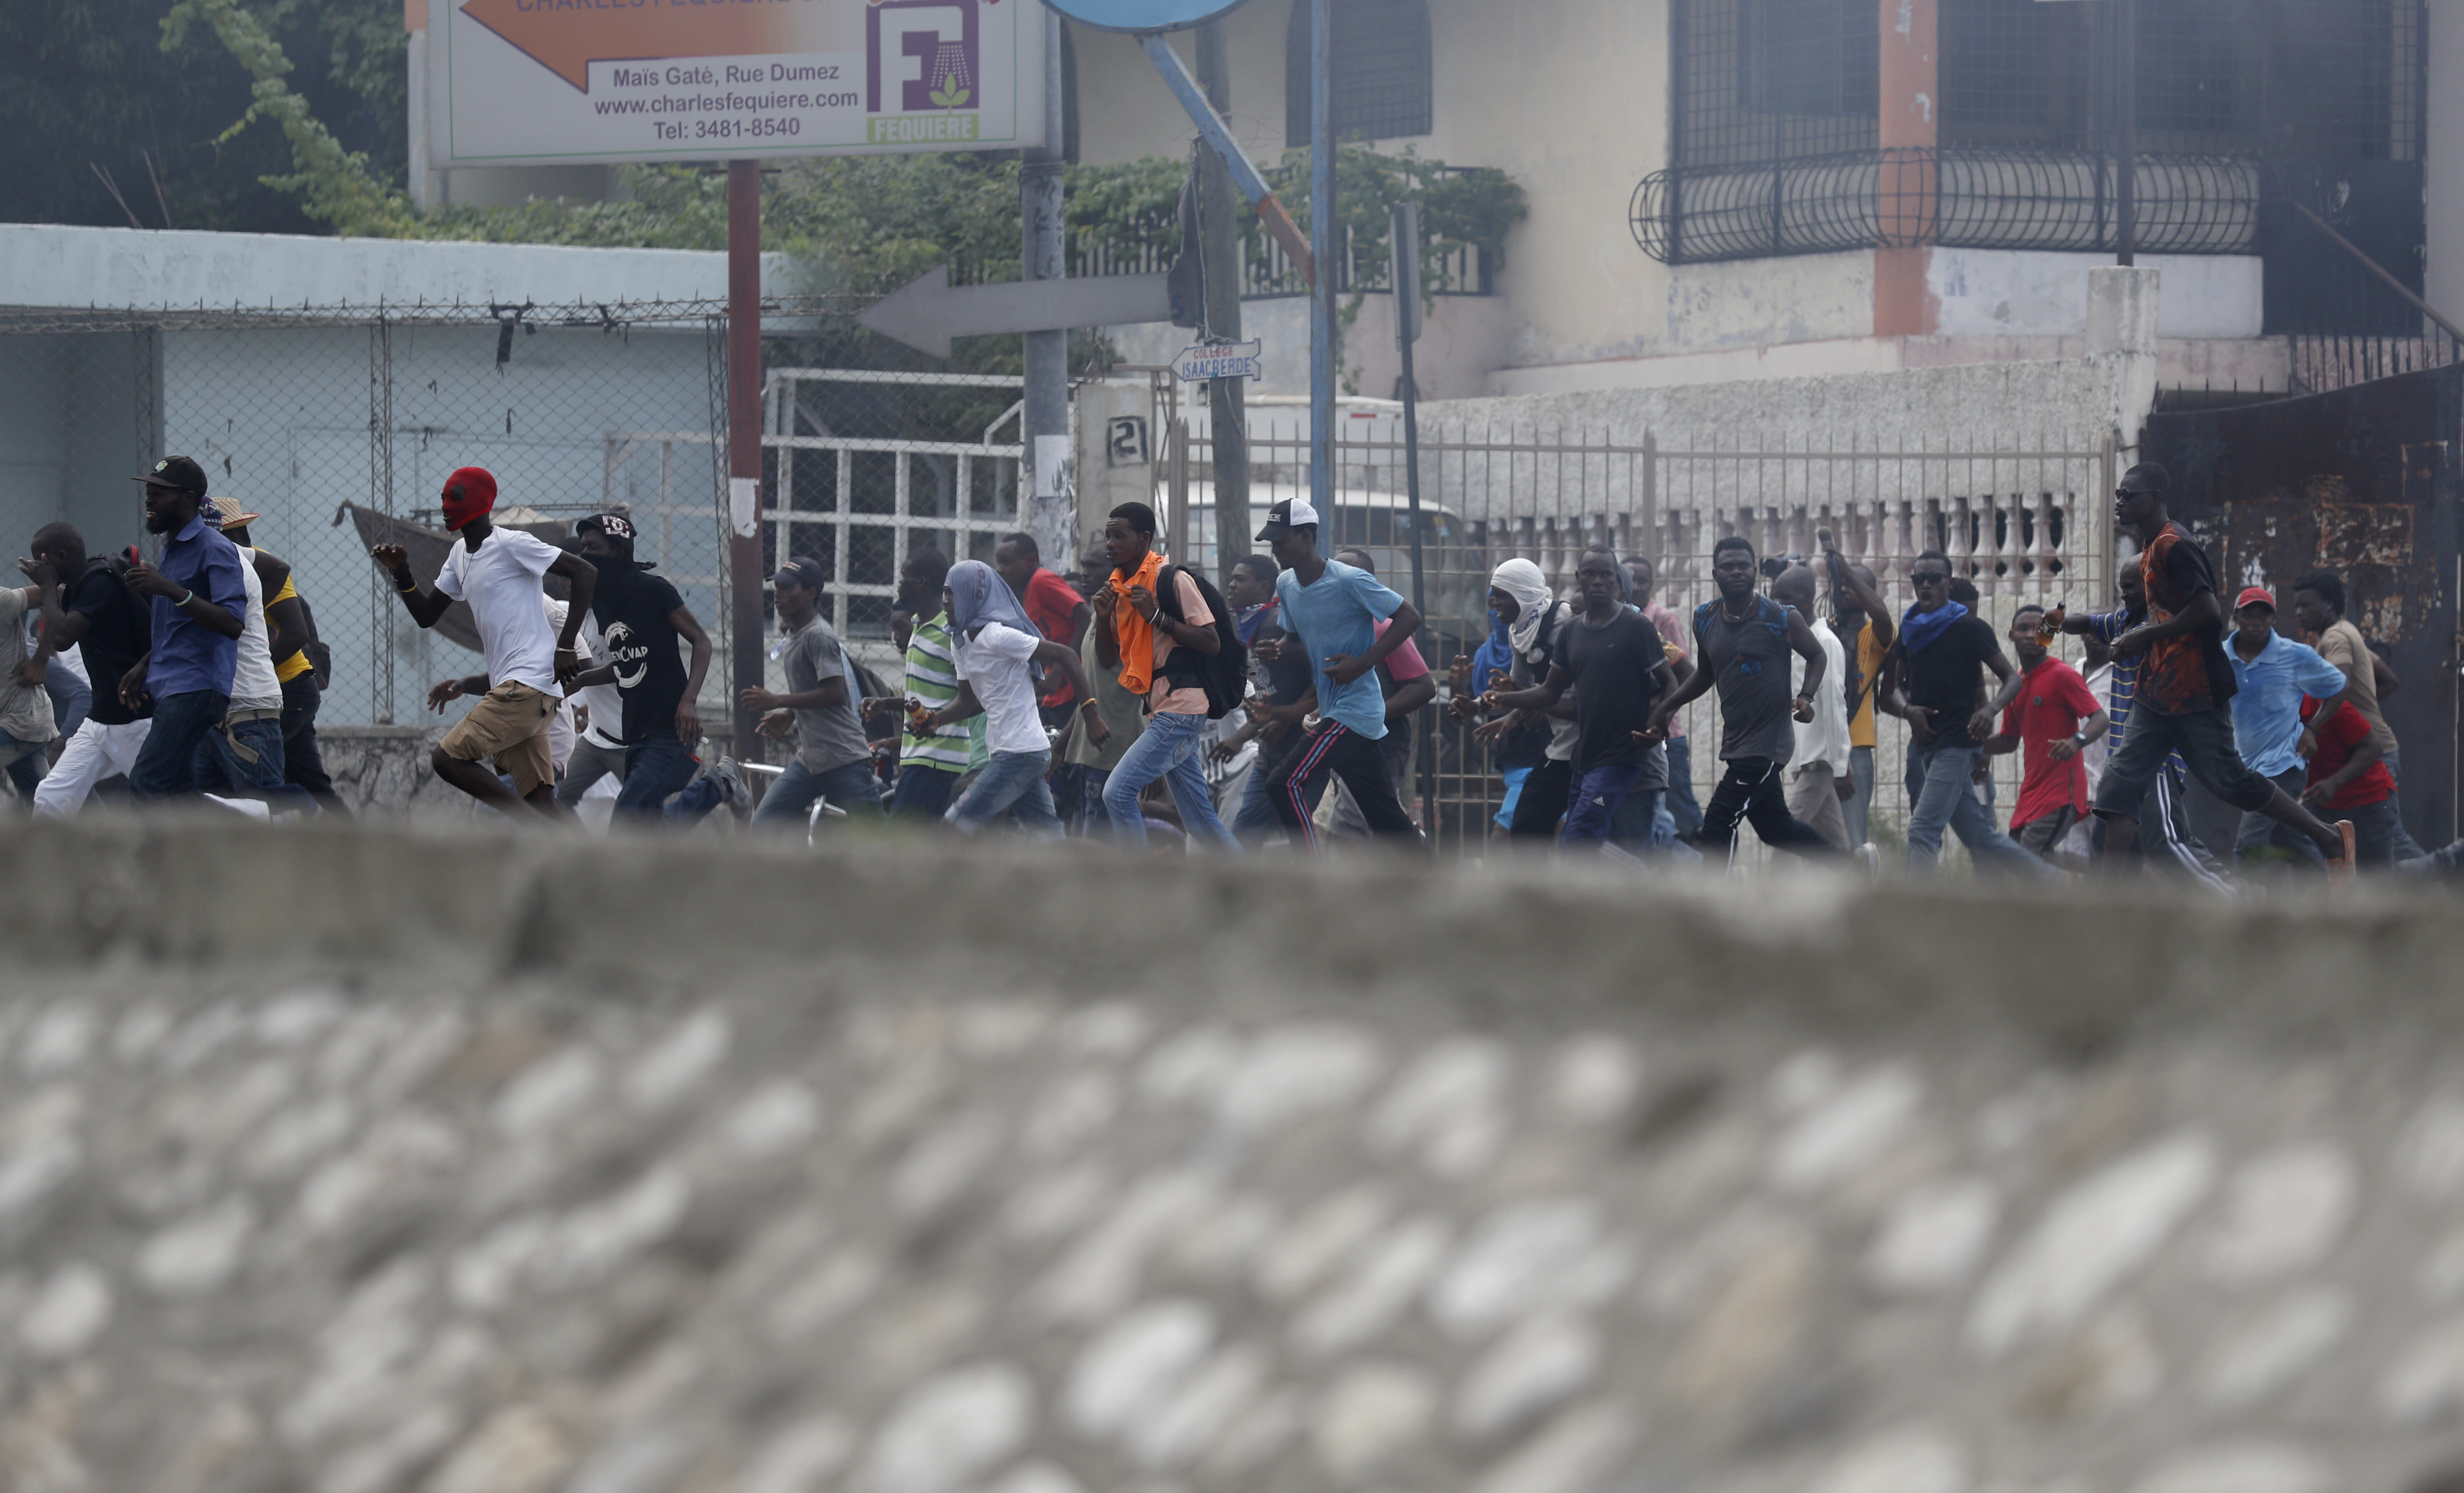 Protestors calling for the resignation of President Jovenel Moise run during clashes with the police in Port-au-Prince, Haiti, Friday, Oct. 4, 2019. After a two-day respite from the recent protests that have wracked Haiti's capital, opposition leaders urged citizens angry over corruption, gas shortages, and inflation to join them for a massive protest march to the local headquarters of the United Nations.(AP Photo/Rebecca Blackwell)